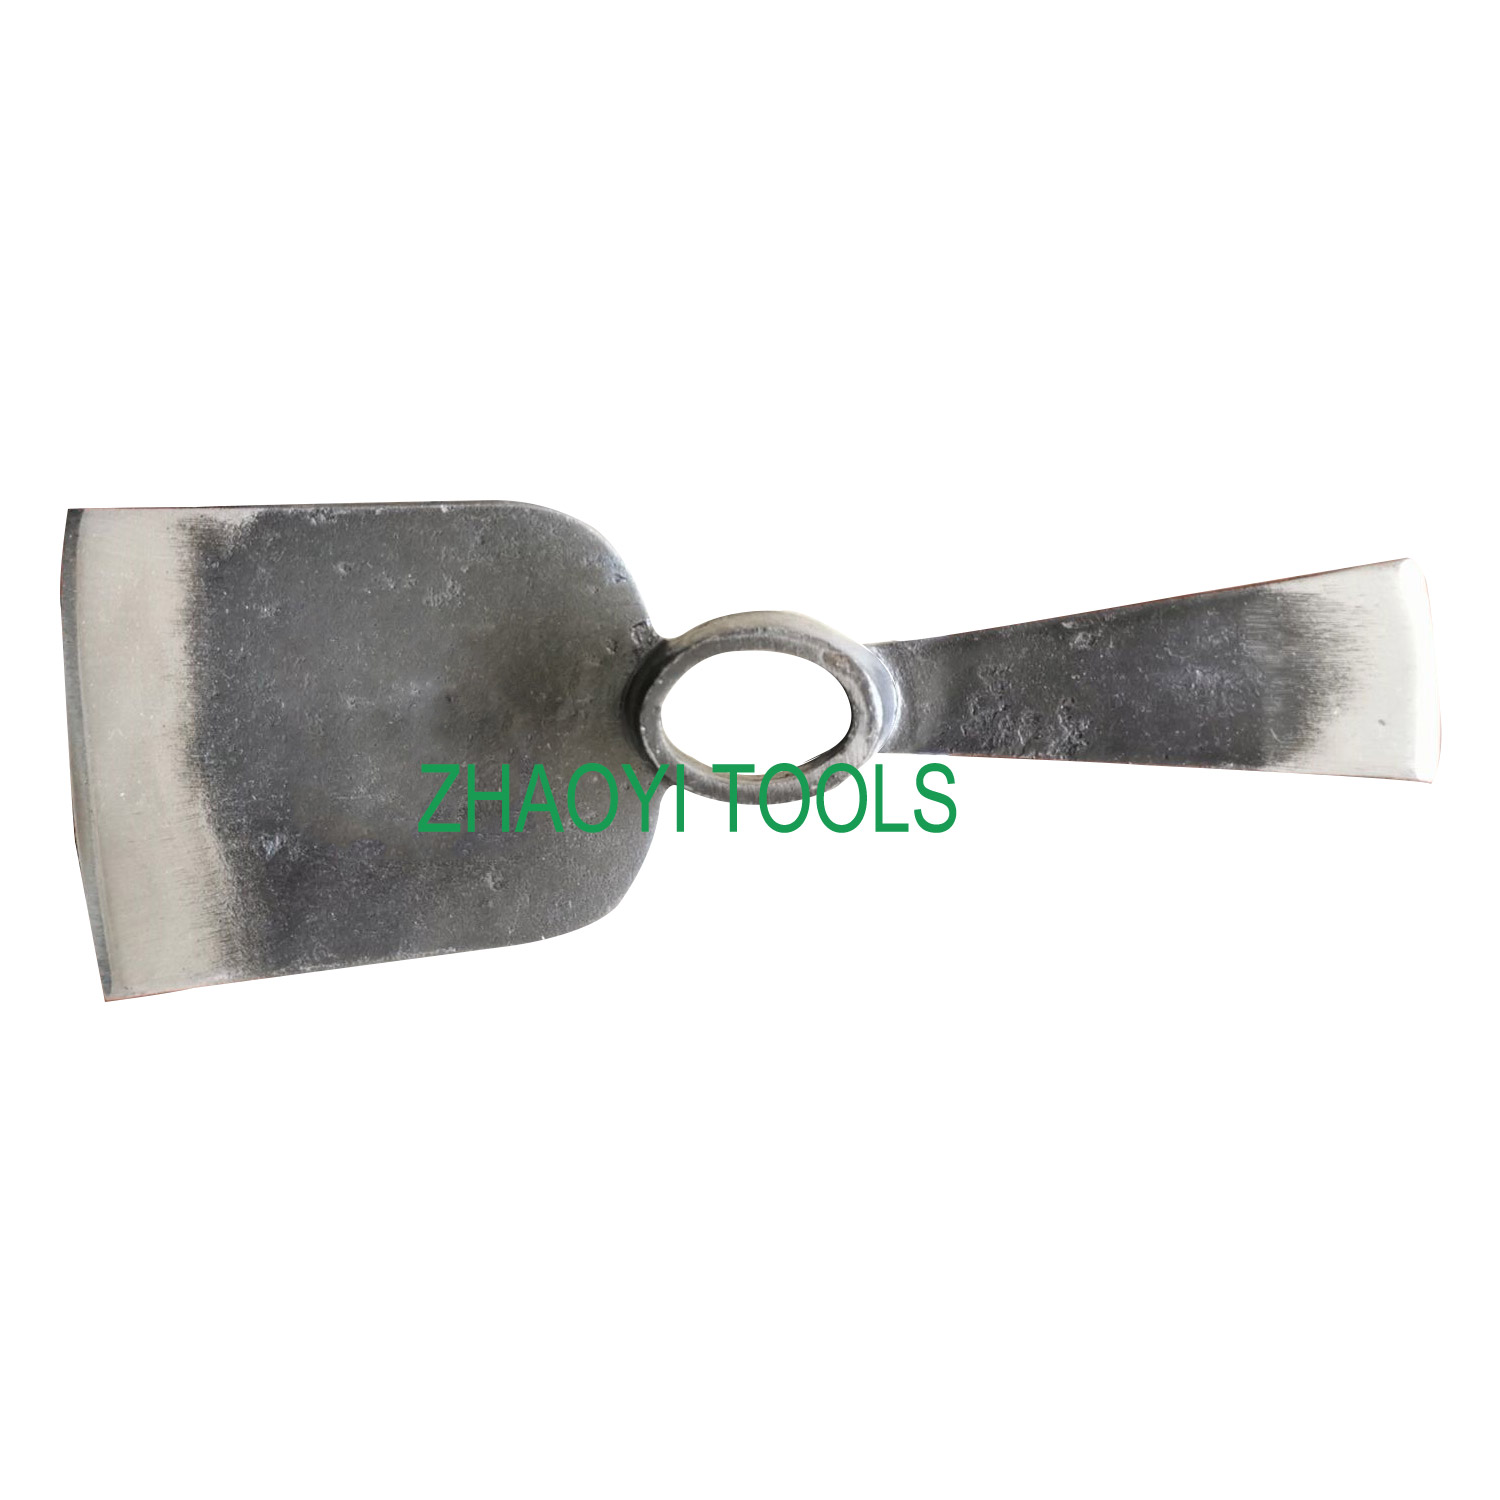 oval hole point chisel forging digging weeding garden pickaxes hoe